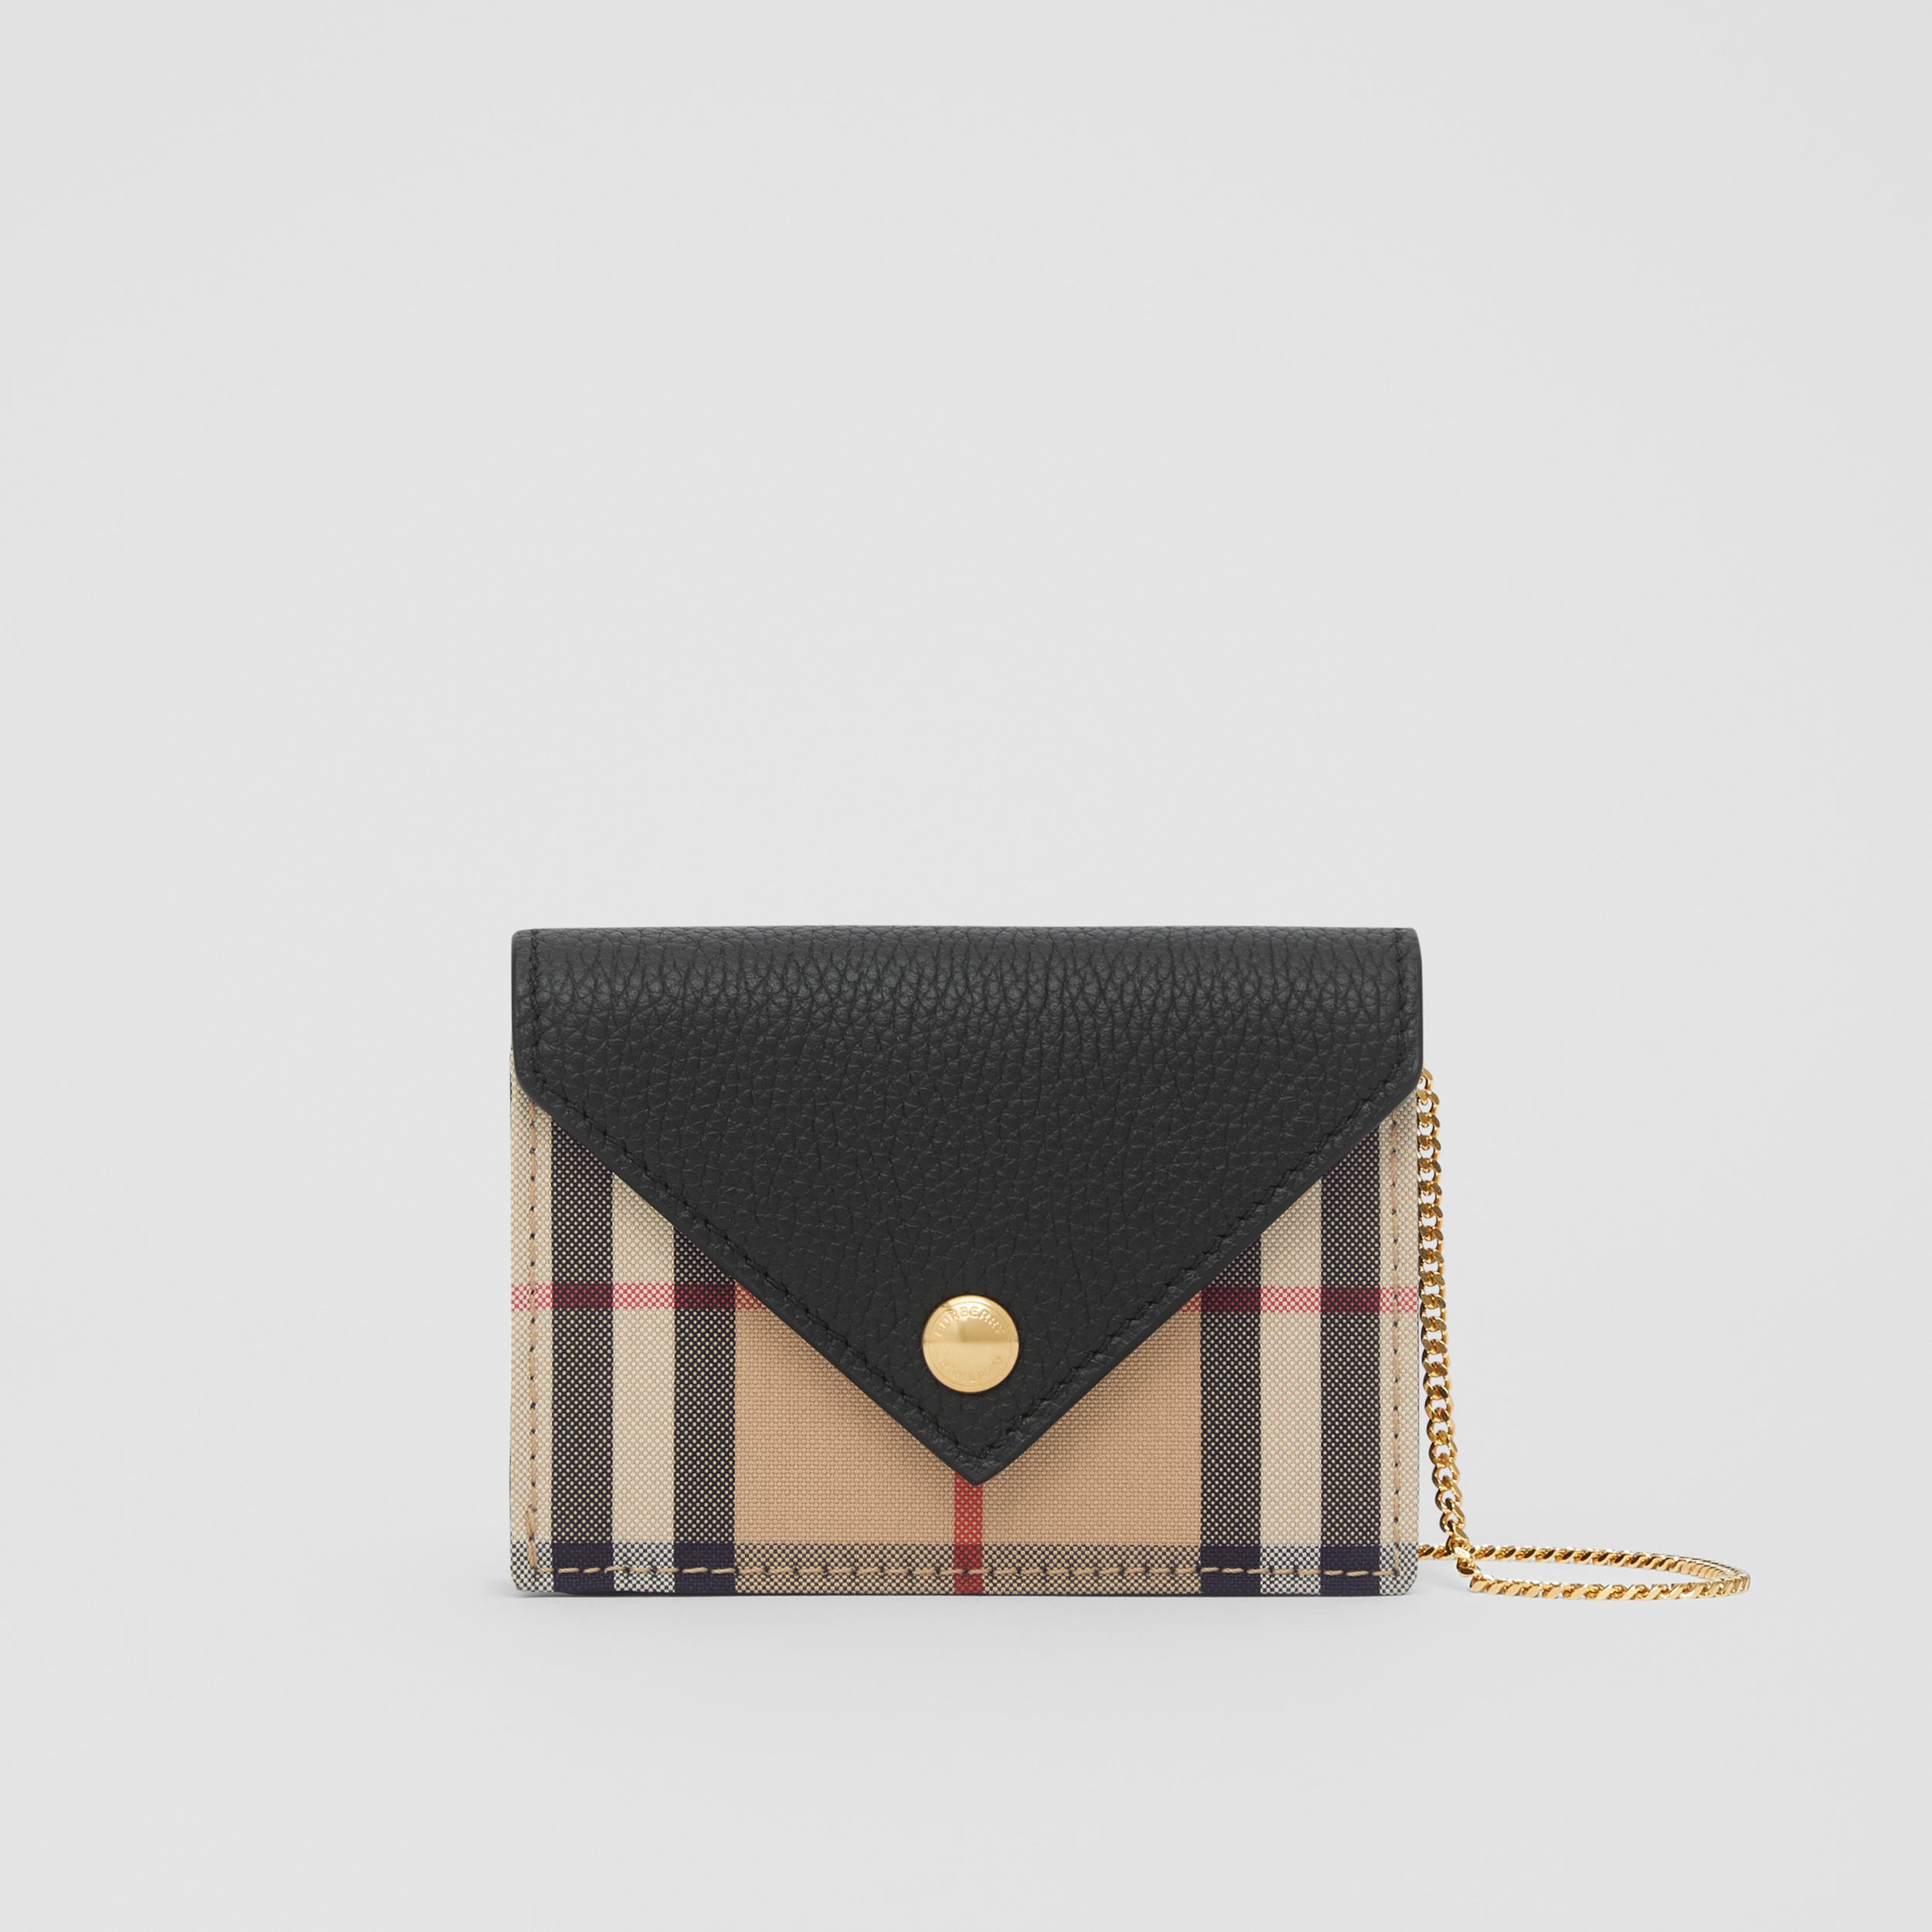 Vintage Check and Leather Card Case with Strap in Black - Women | Burberry - 1